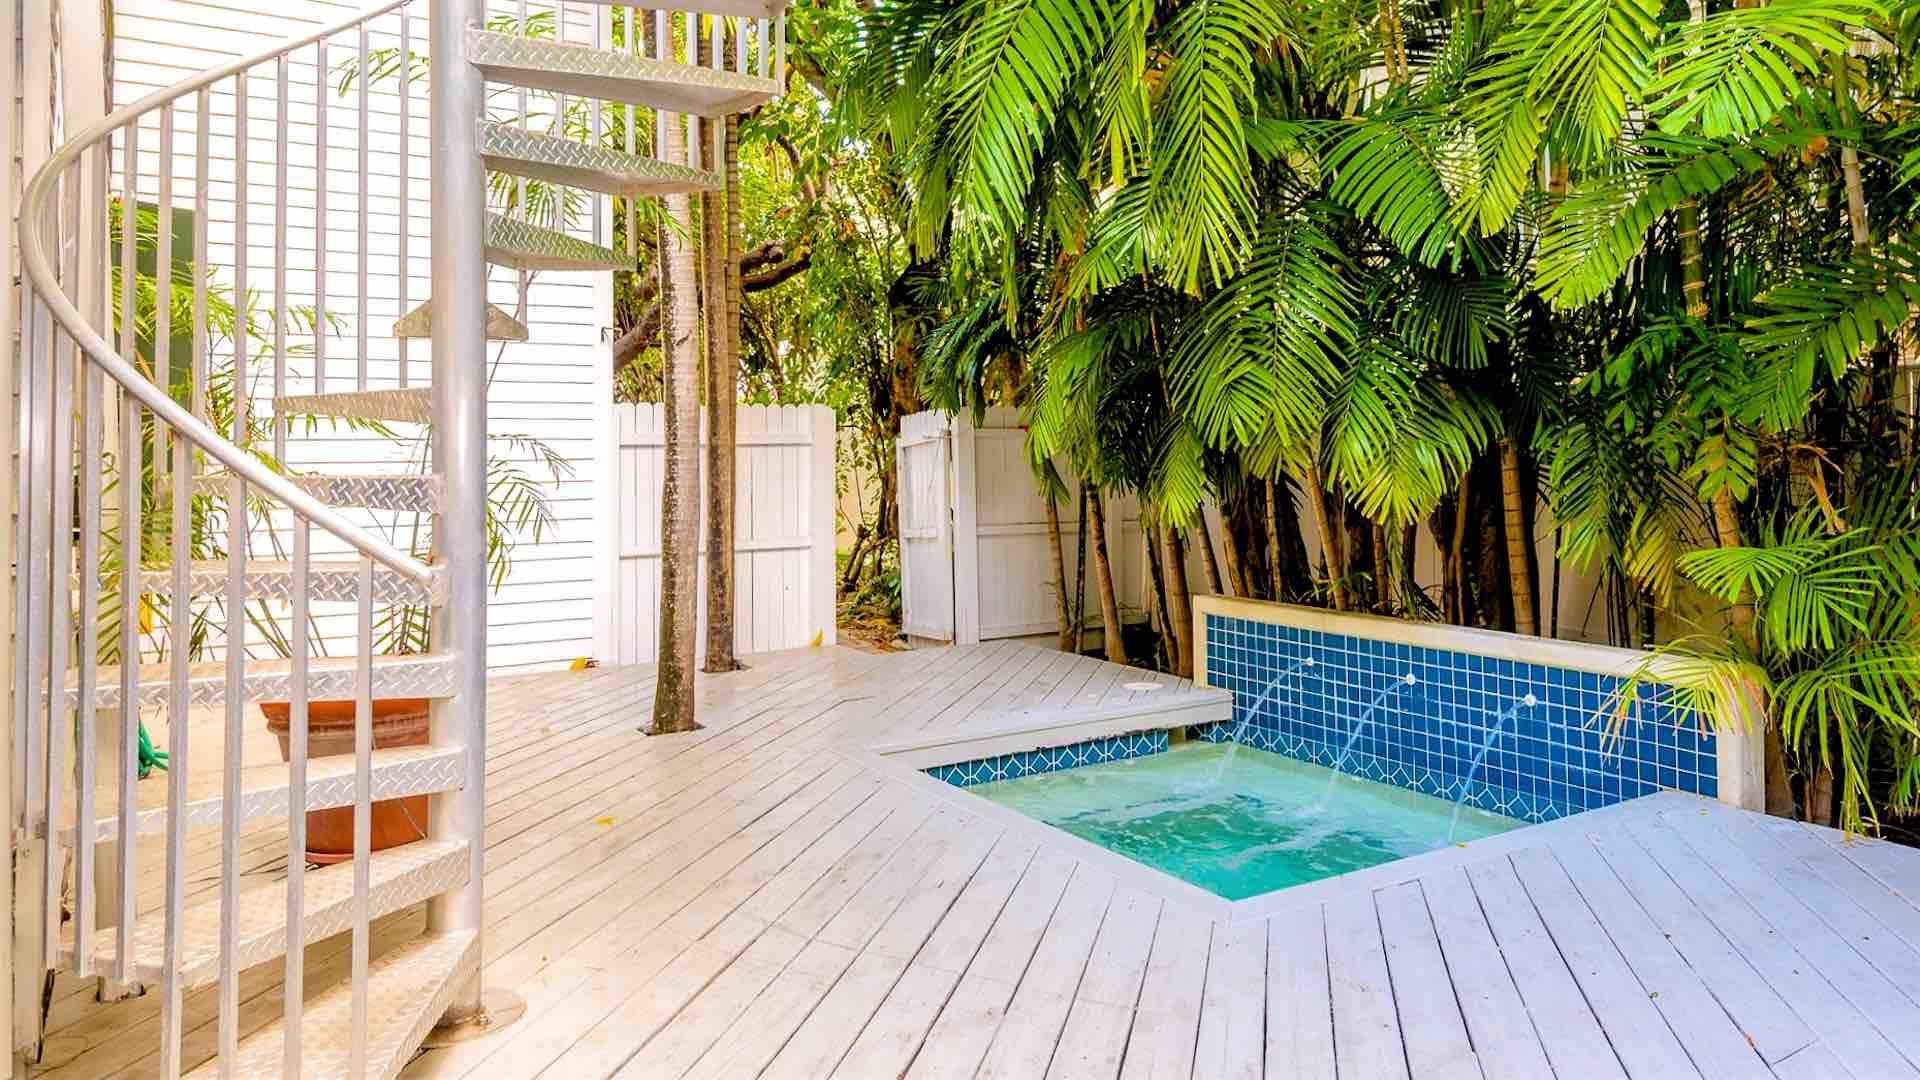 There is also a Jacuzzi tucked in its own corner of the pool deck for up to four